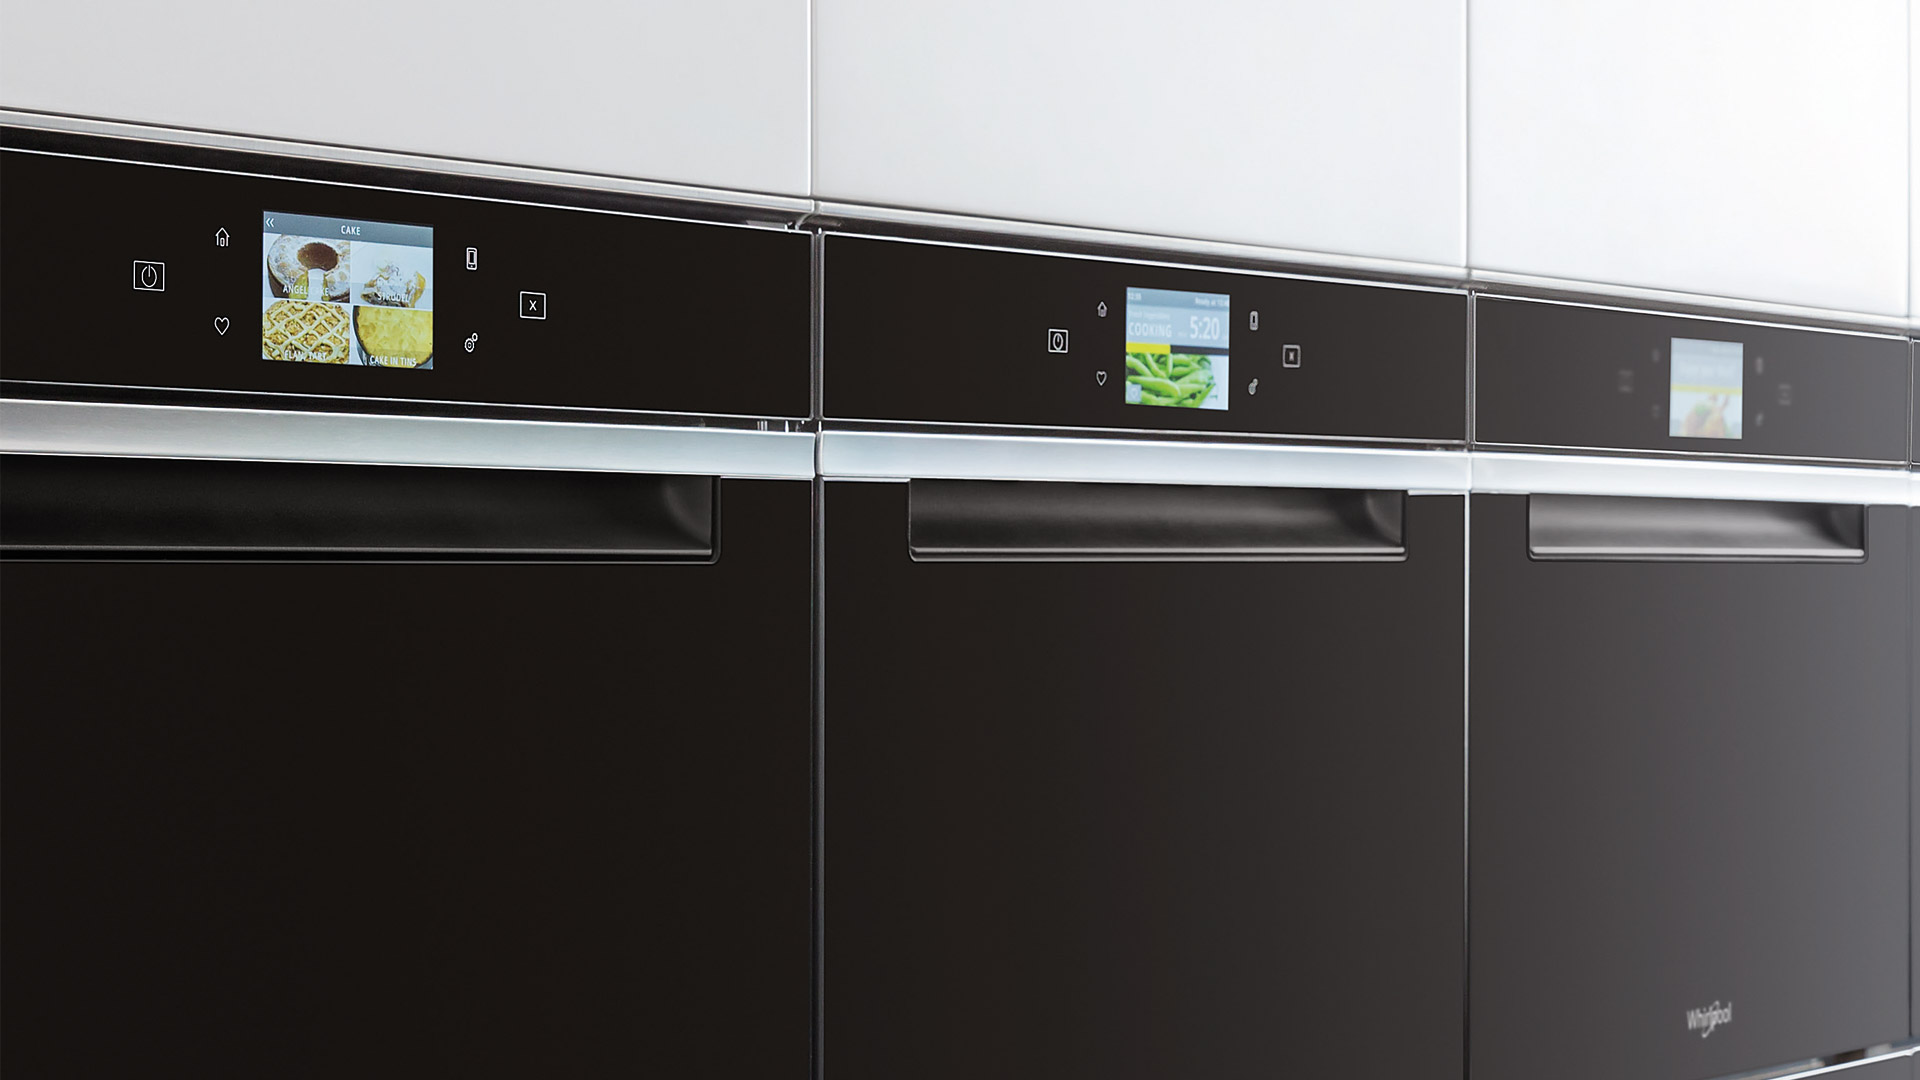 Intuitiveness, technology and design in the kitchen with the W Collection by Whirlpool - Cucine LUBE